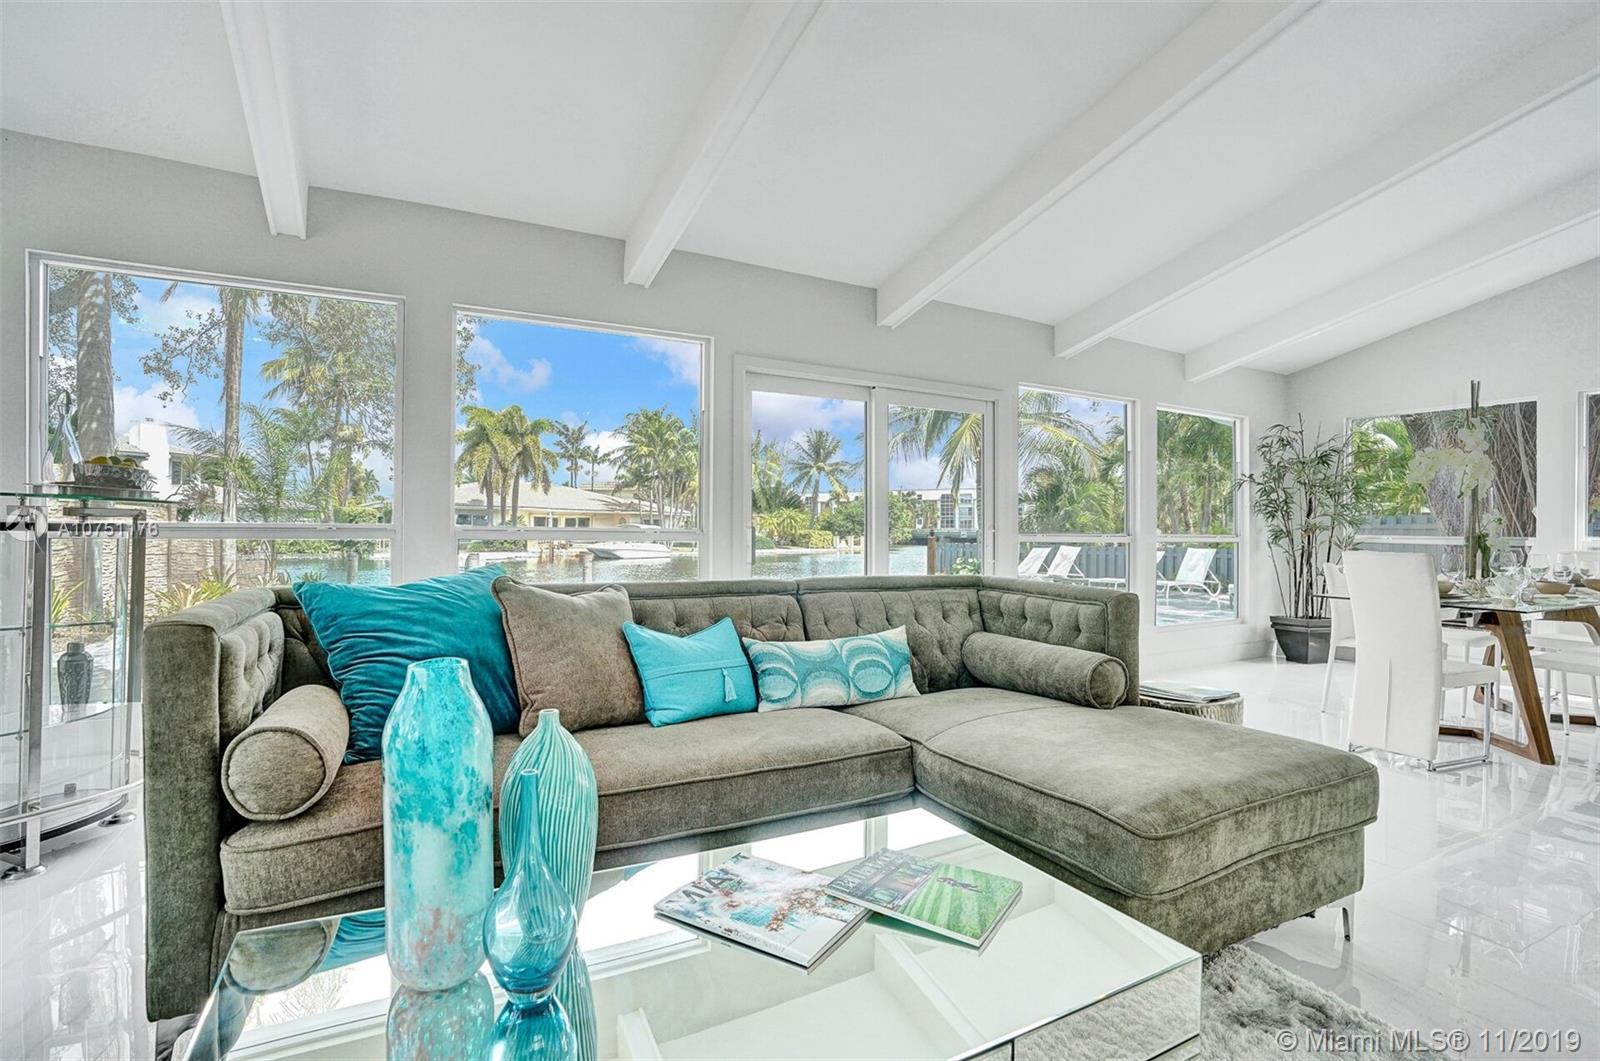 Live the Lifestyle Of Luxury Waterfront  In This Estate Home,2 Bed 2 Bath High End Renovation In E.